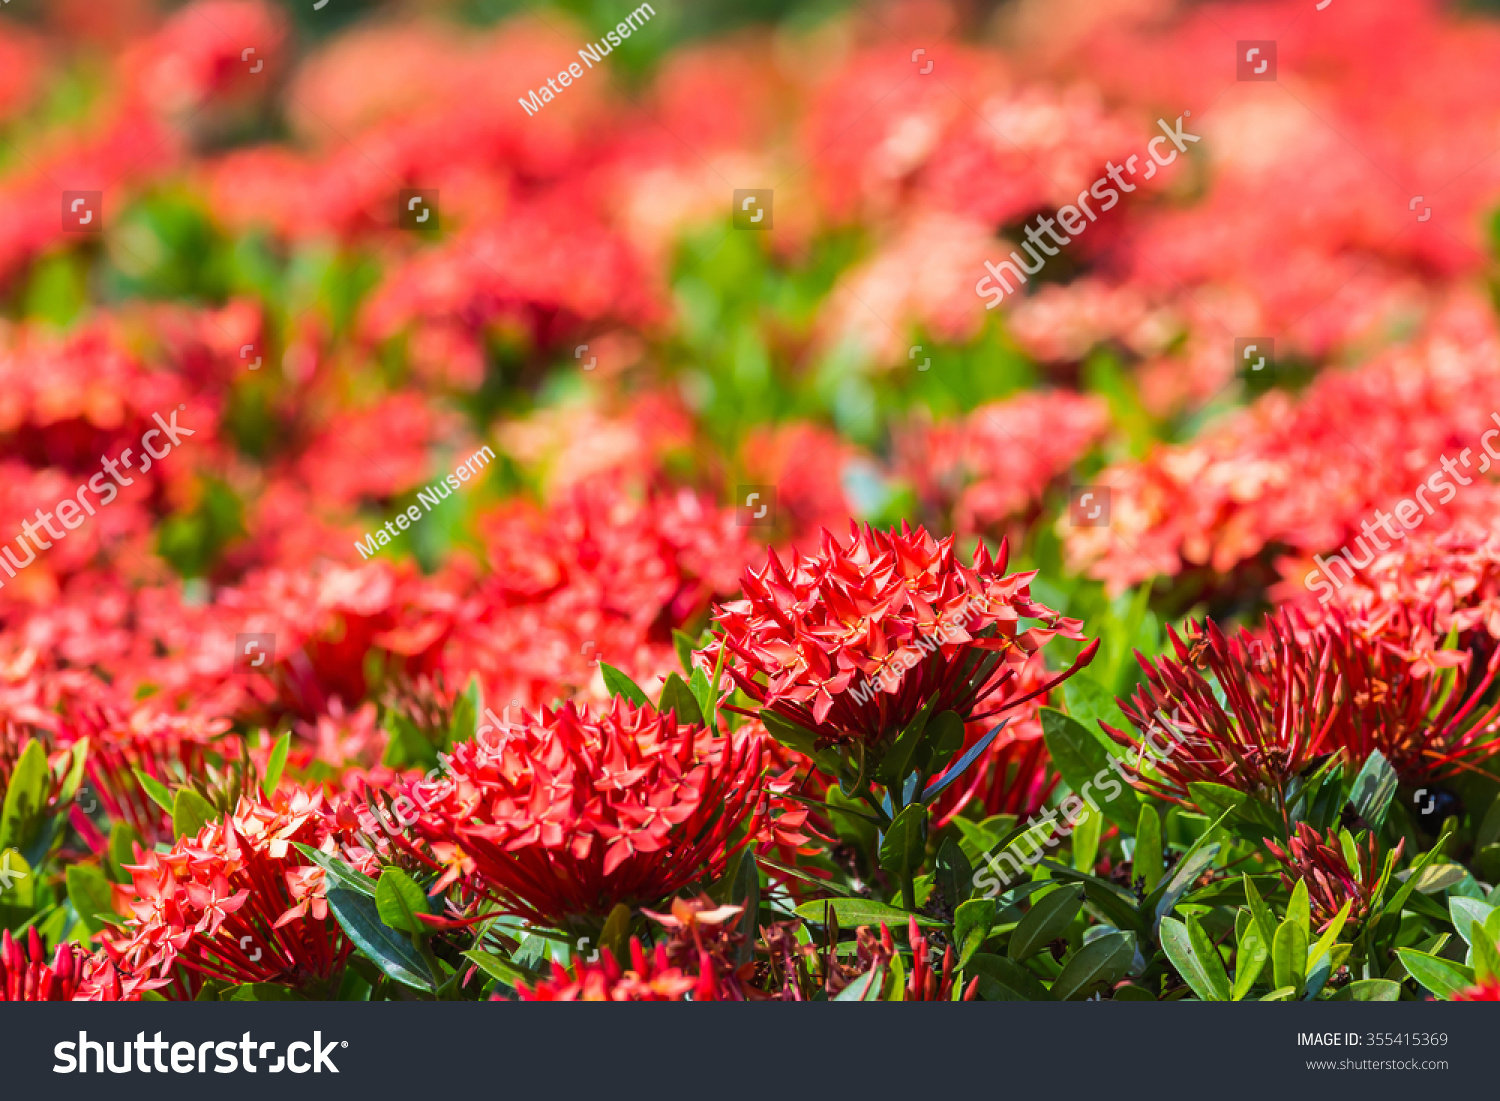 Close up of red ixora or west indian jasmine flower ez canvas id 355415369 izmirmasajfo